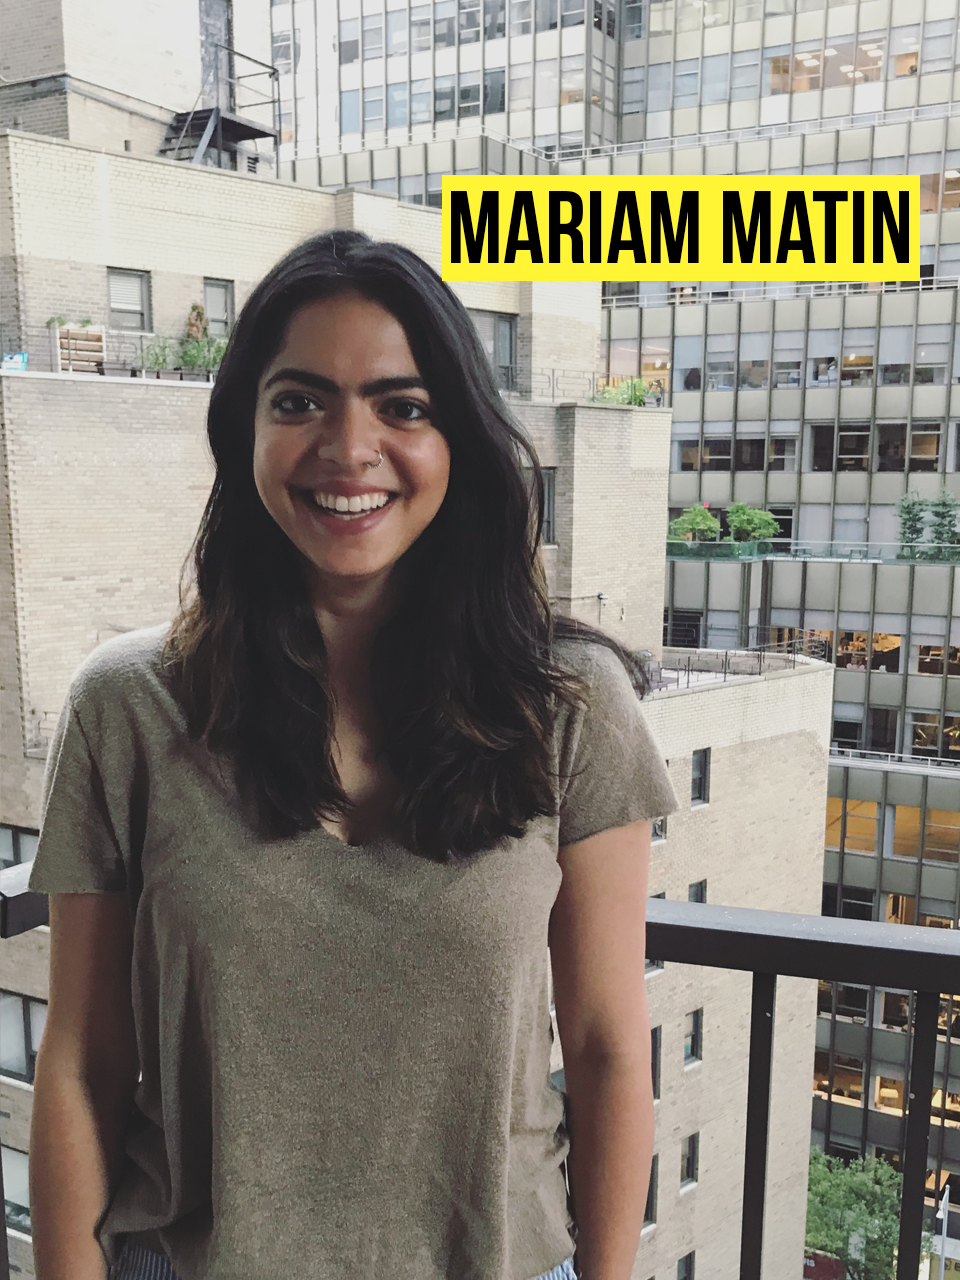 "co-founder, director of product marketing - Mariam grew up in Houston, surrounded by family and world-class tacos. She became involved in interfaith issues and girls education in India. She was drawn to Georgetown University for espousing similar Jesuit values and spent her four years studying (""studying"") Econ and Psych. After graduation, she moved to New York to do brand marketing and UX design. Her love for social impact and entrepreneurship (and her lovely co-founders) brought her to Second Day. She handles the branding, marketing, product design/build, and oversees a team of copywriters."